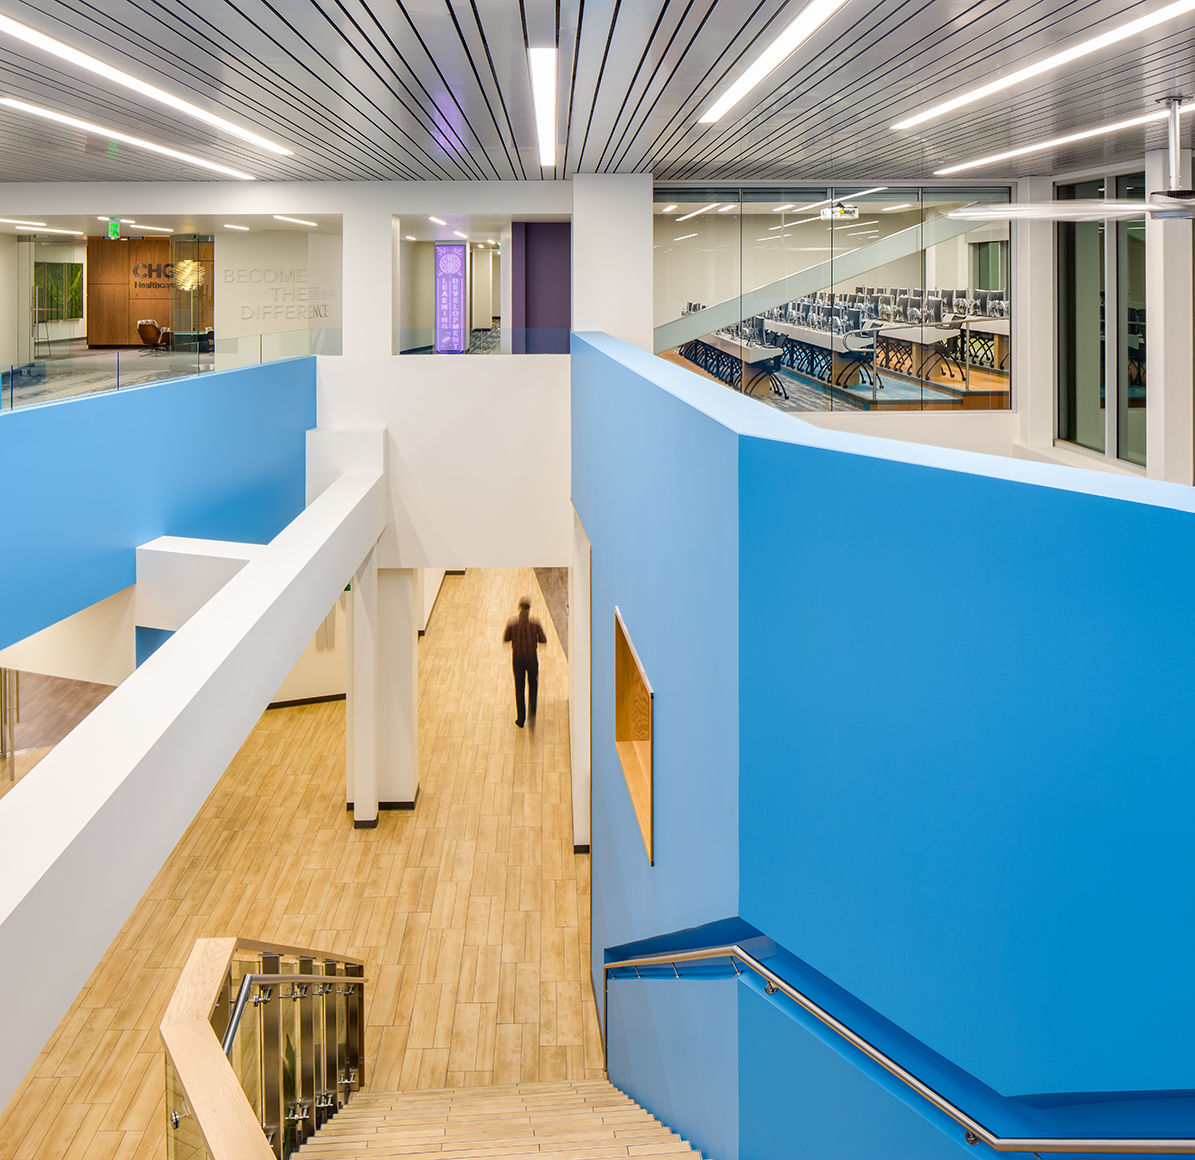 This architectural, interior photograph shows the viewer a camera angle taken from the second  level looking down a modern stairwell in an office space of a person on the first floor walking away. The walls are blue, the floors are wood and we see a glass enclosed traing room and an entrace to the corporate suites on the second floor.